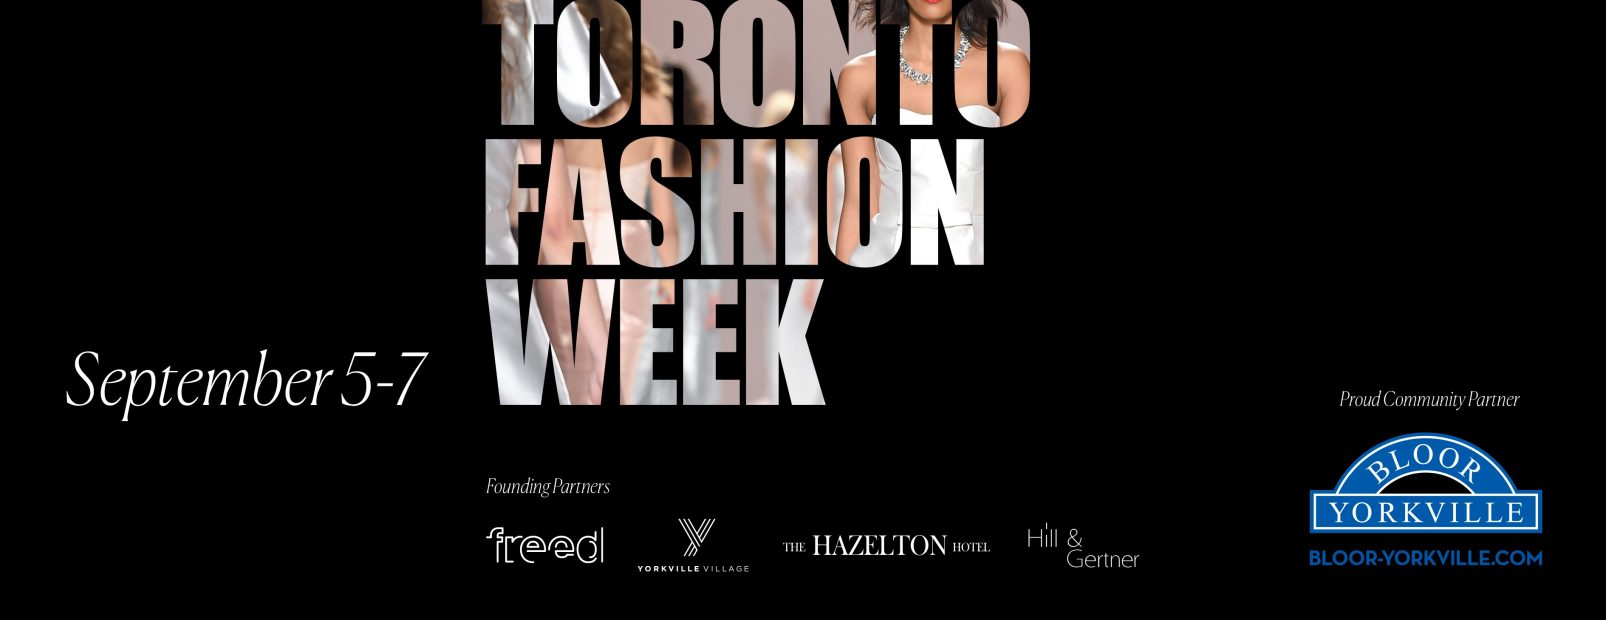 TORONTO FASHION WEEK – NEW LOCATION IN BLOOR-YORKVILLE